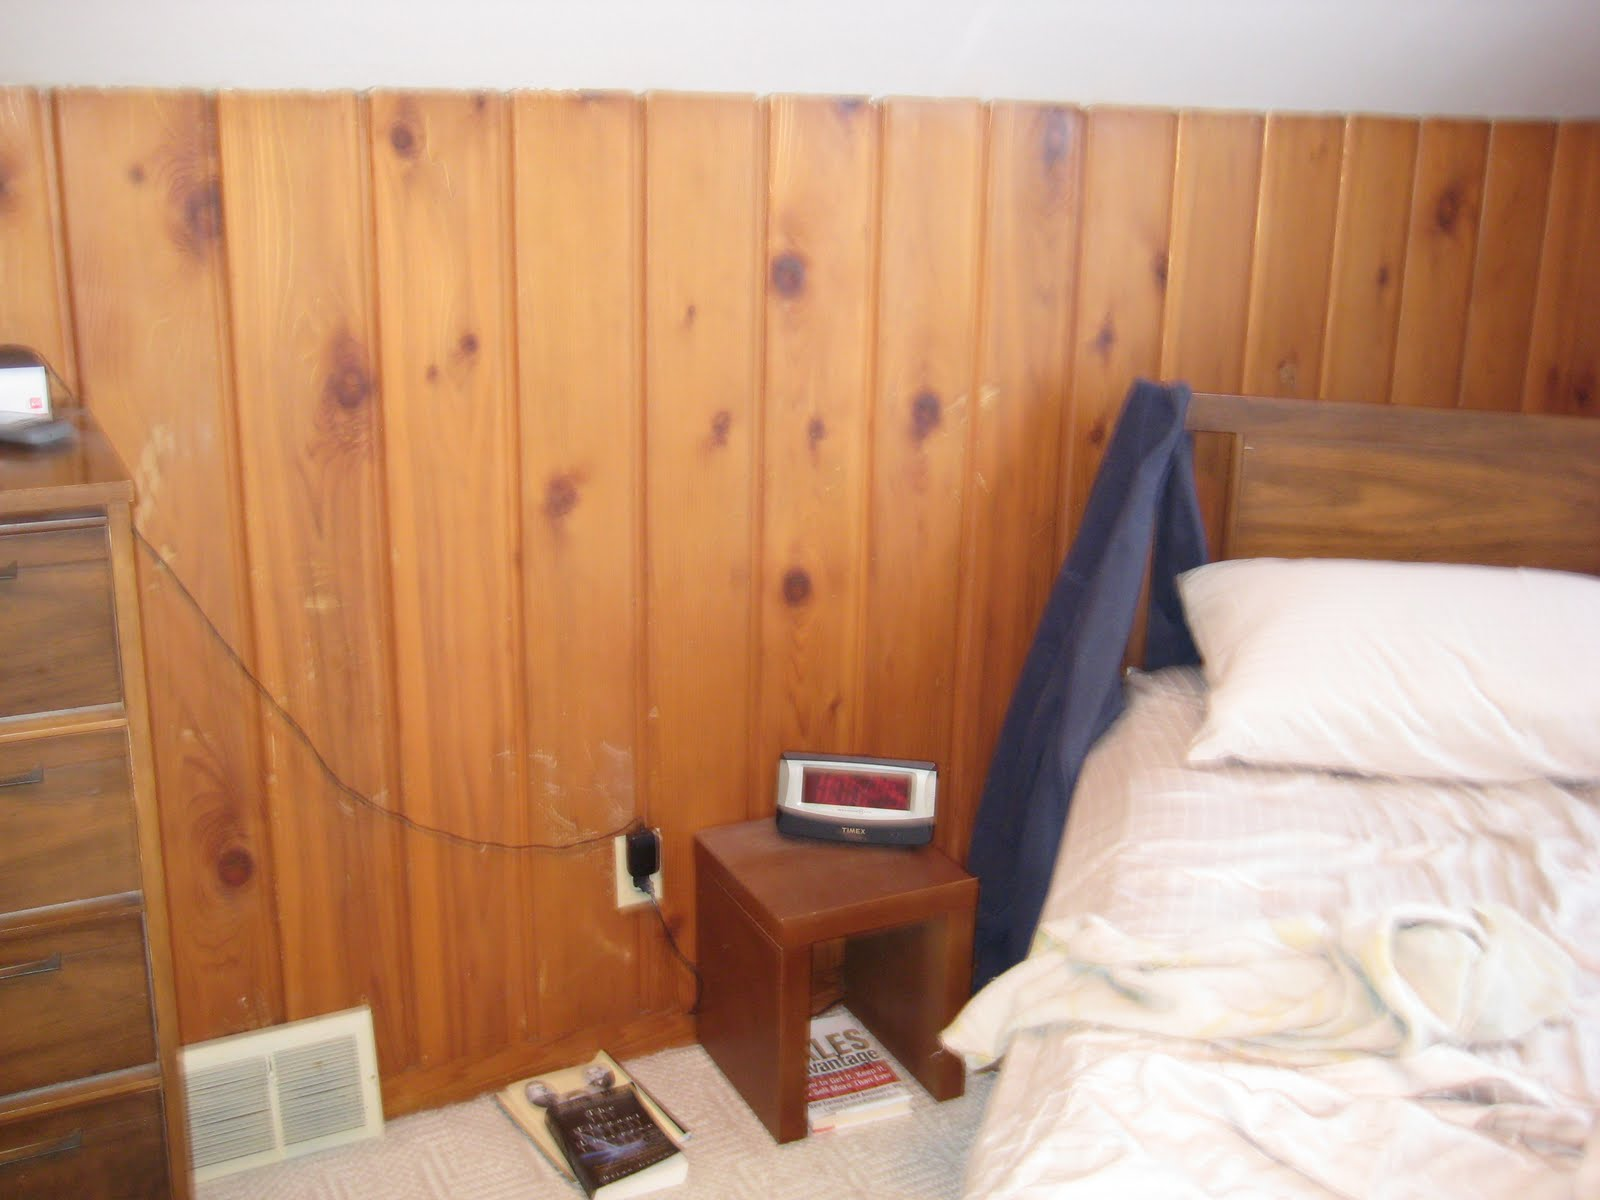 Painting Over Knotty Pine Paneling; Complete Master Bedroom Redo